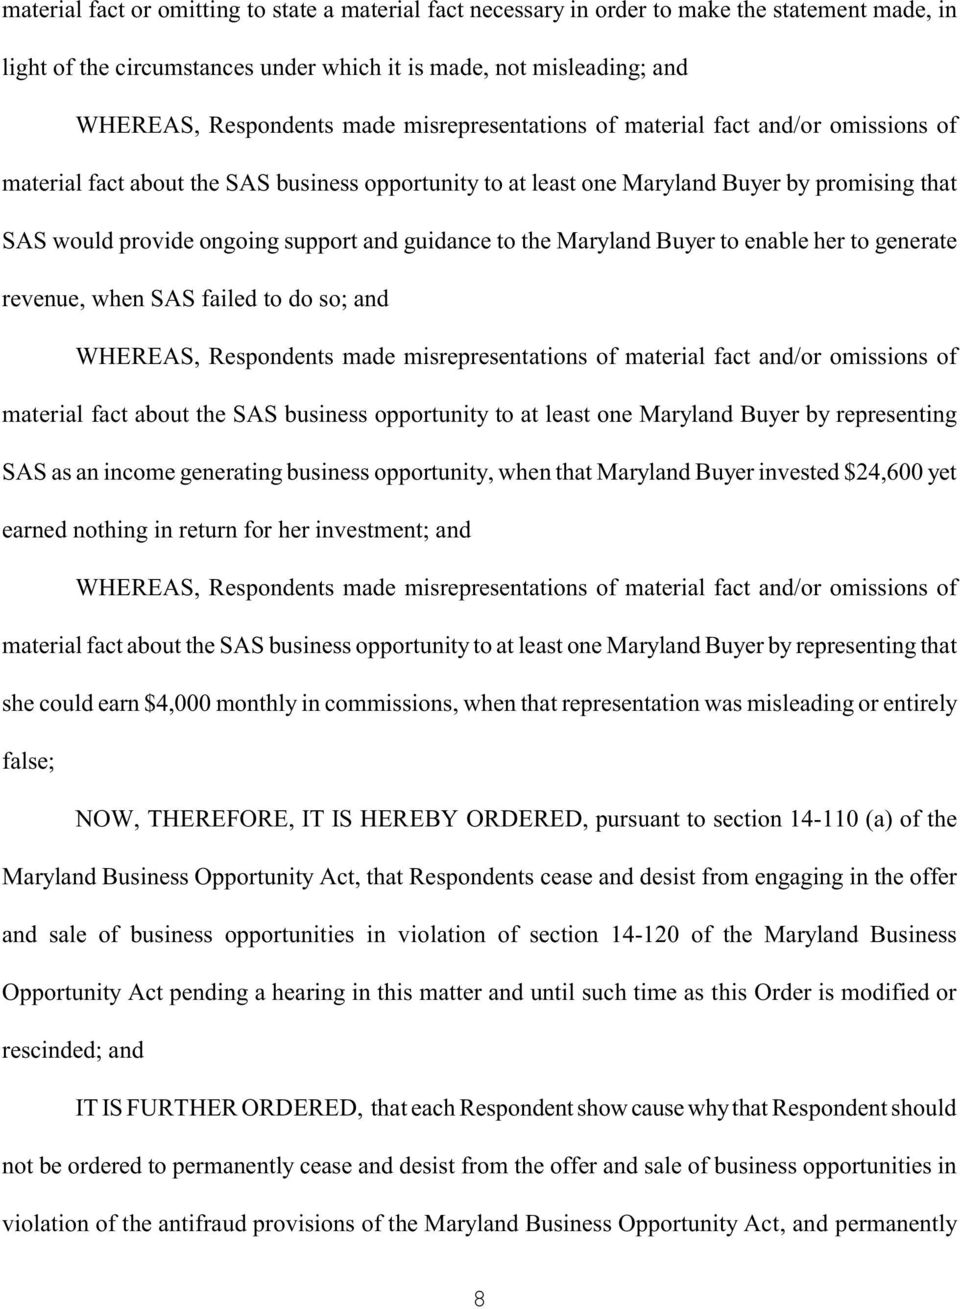 guidance to the Maryland Buyer to enable her to generate revenue, when SAS failed to do so; and WHEREAS, Respondents made misrepresentations of material fact and/or omissions of material fact about